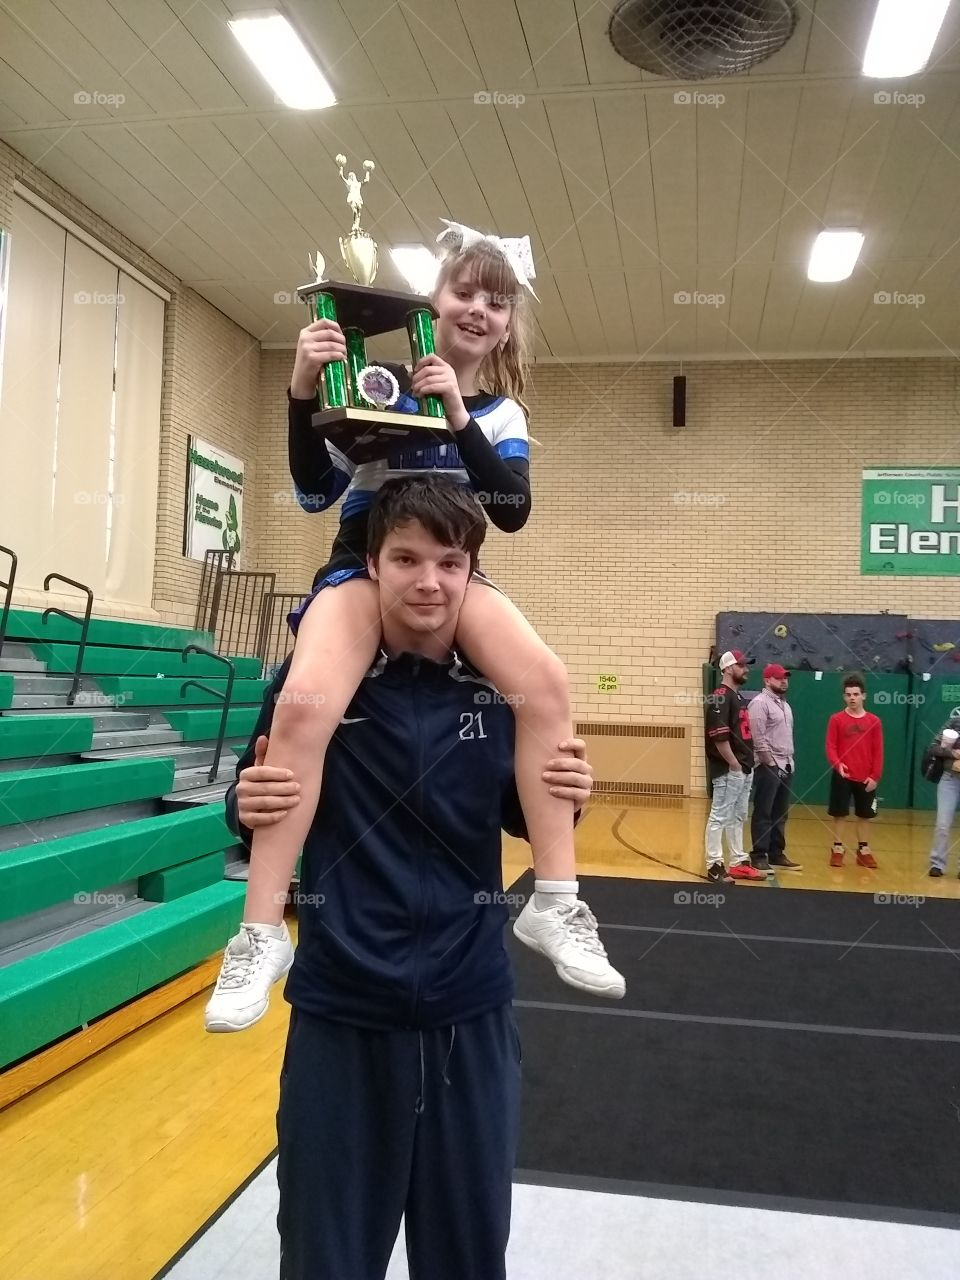 big bro proud of lil sis for another cheer 1st place